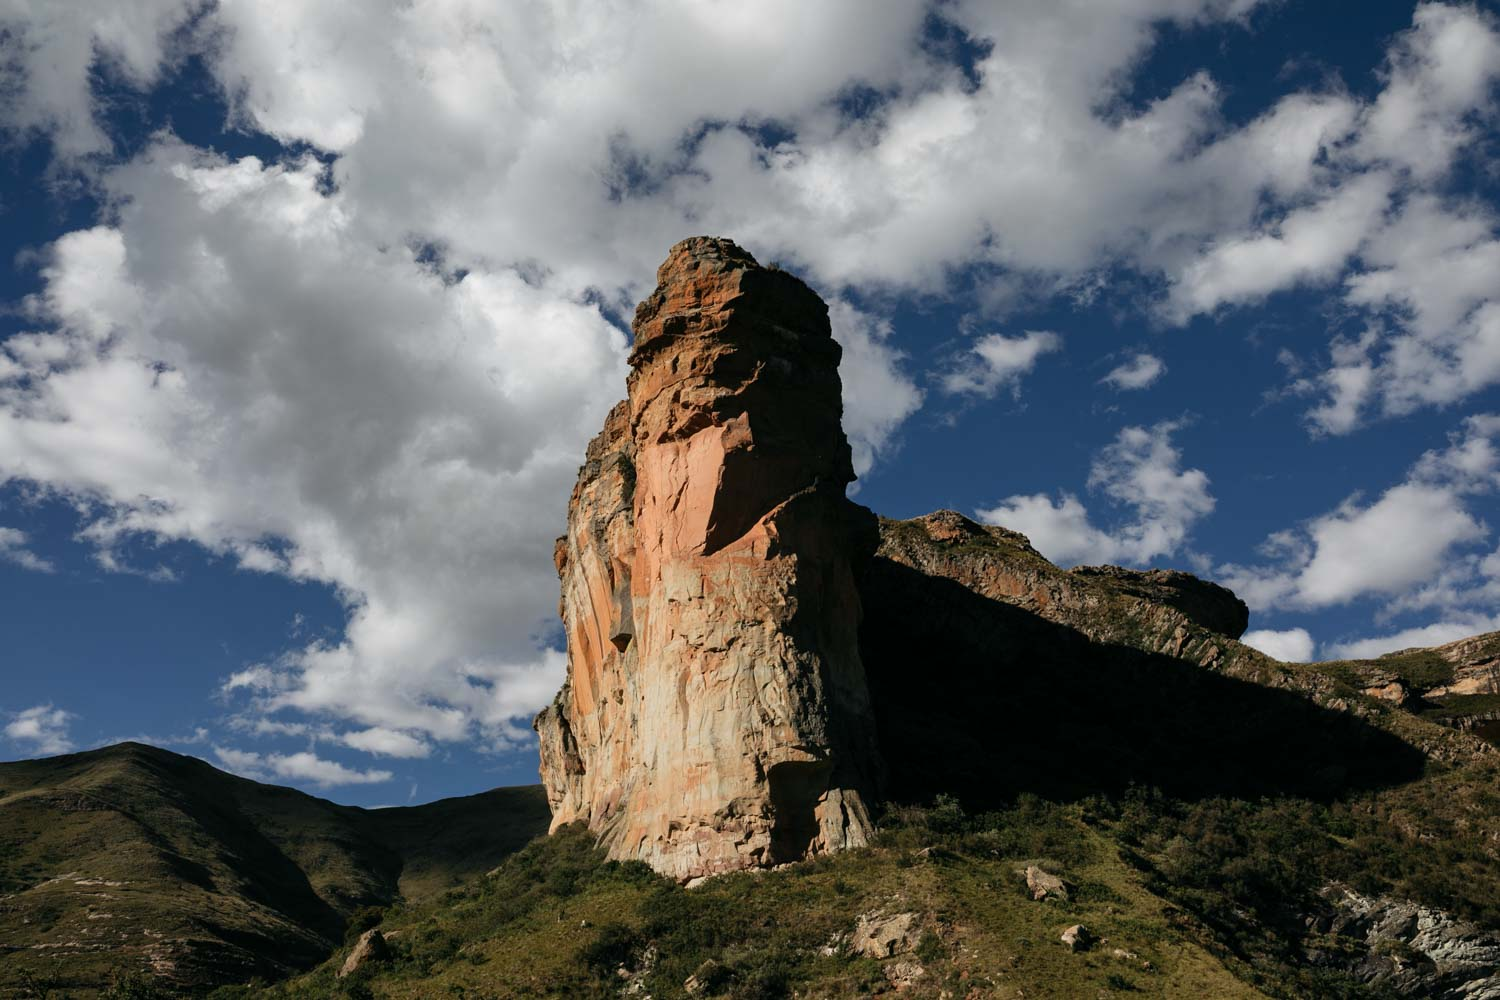 Epic Nature And Mountains In Golden Gate National Park Near Clarens